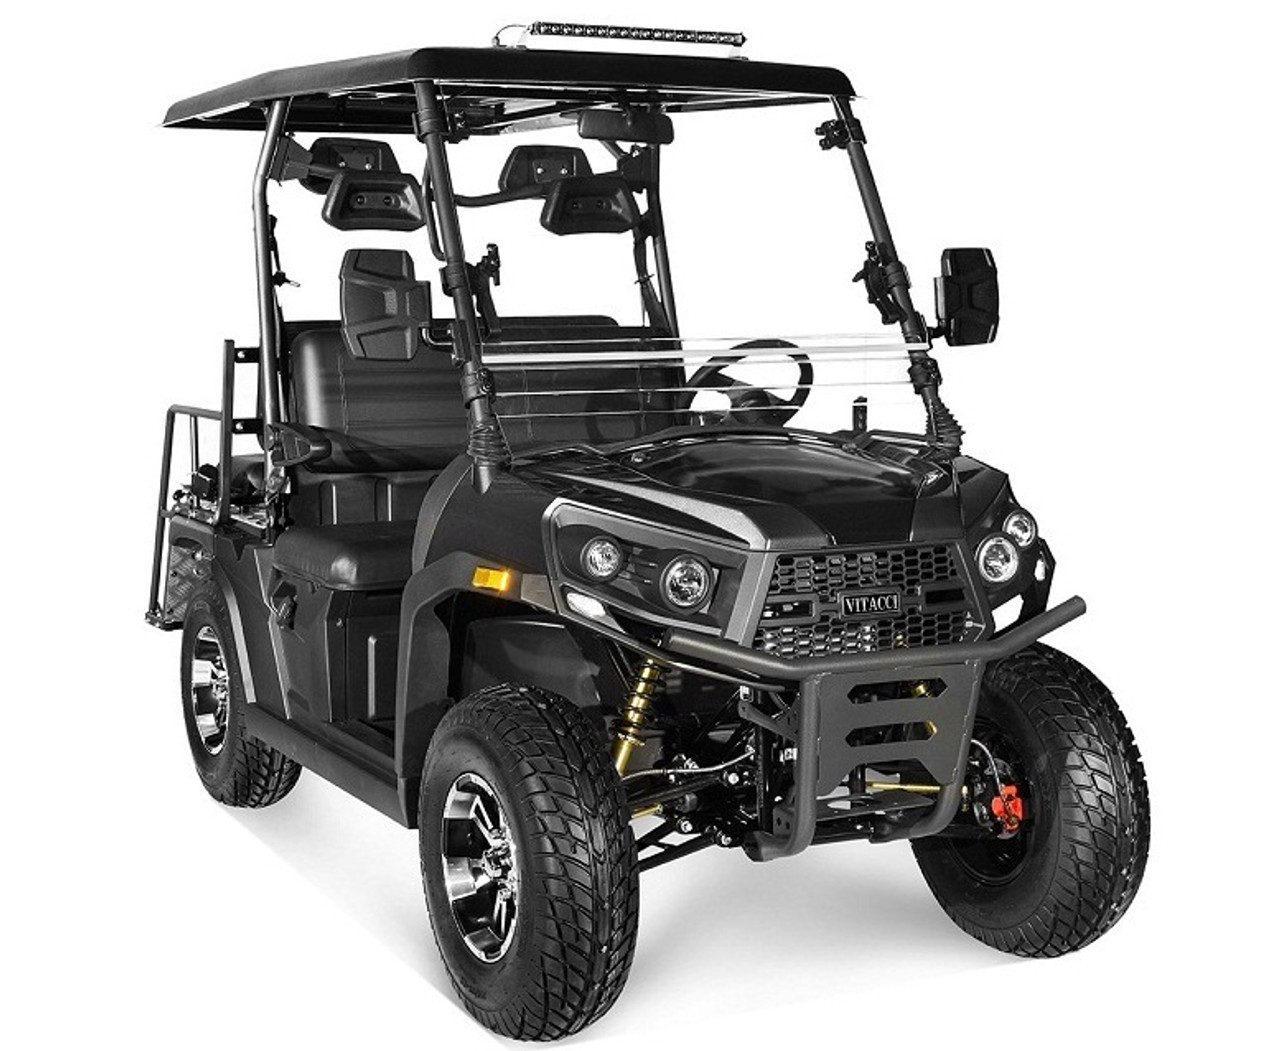 YES - Vitacci Rover-200 EFI 169cc (Golf Cart) UTV, 4-stroke, Single-cylinder, Oil-cooled - Fully Assembled and Tested